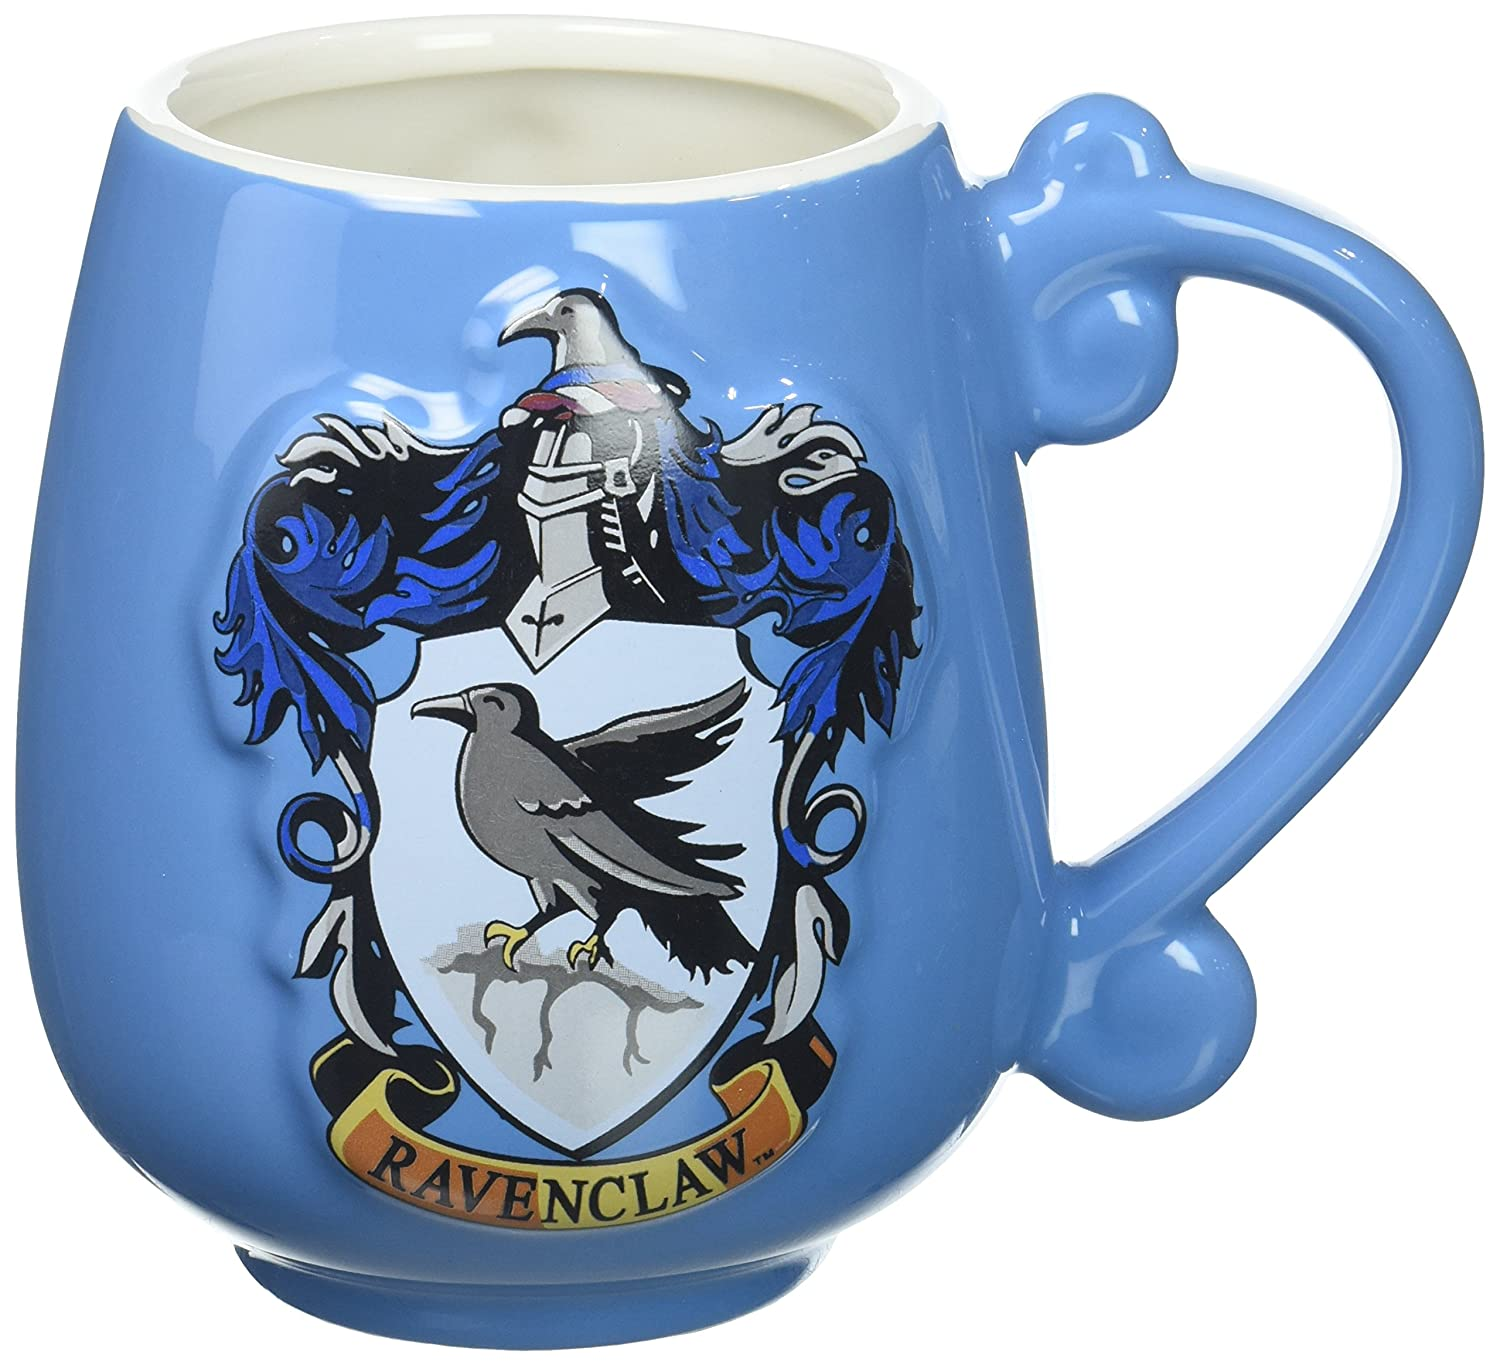 Harry Potter Ravenclaw Crest Ceramic Mug Decorative Tableware by Harry Potter